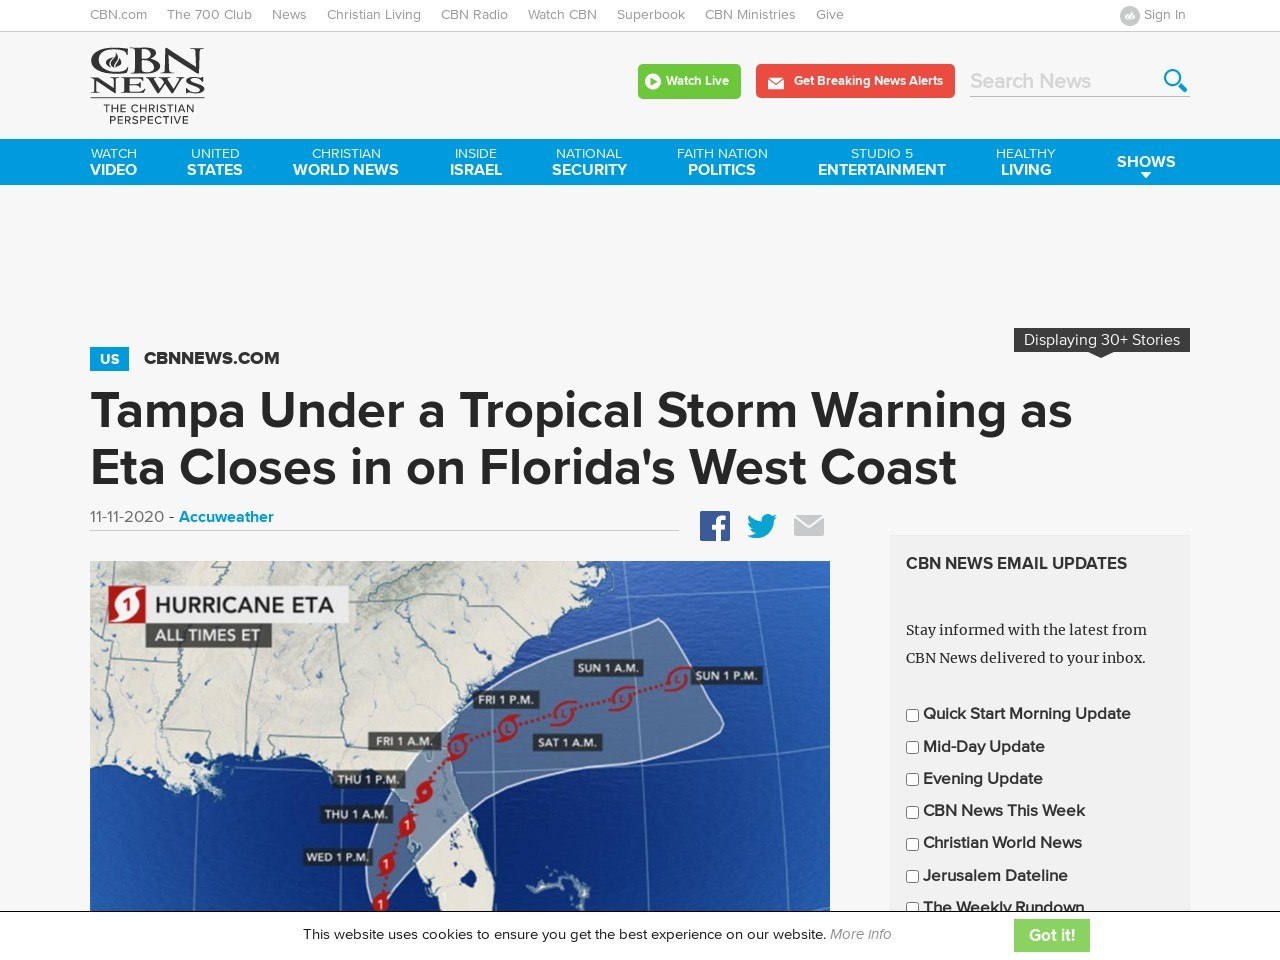 Tampa Under a Tropical Storm Warning as Eta Closes in on Florida's West Coast